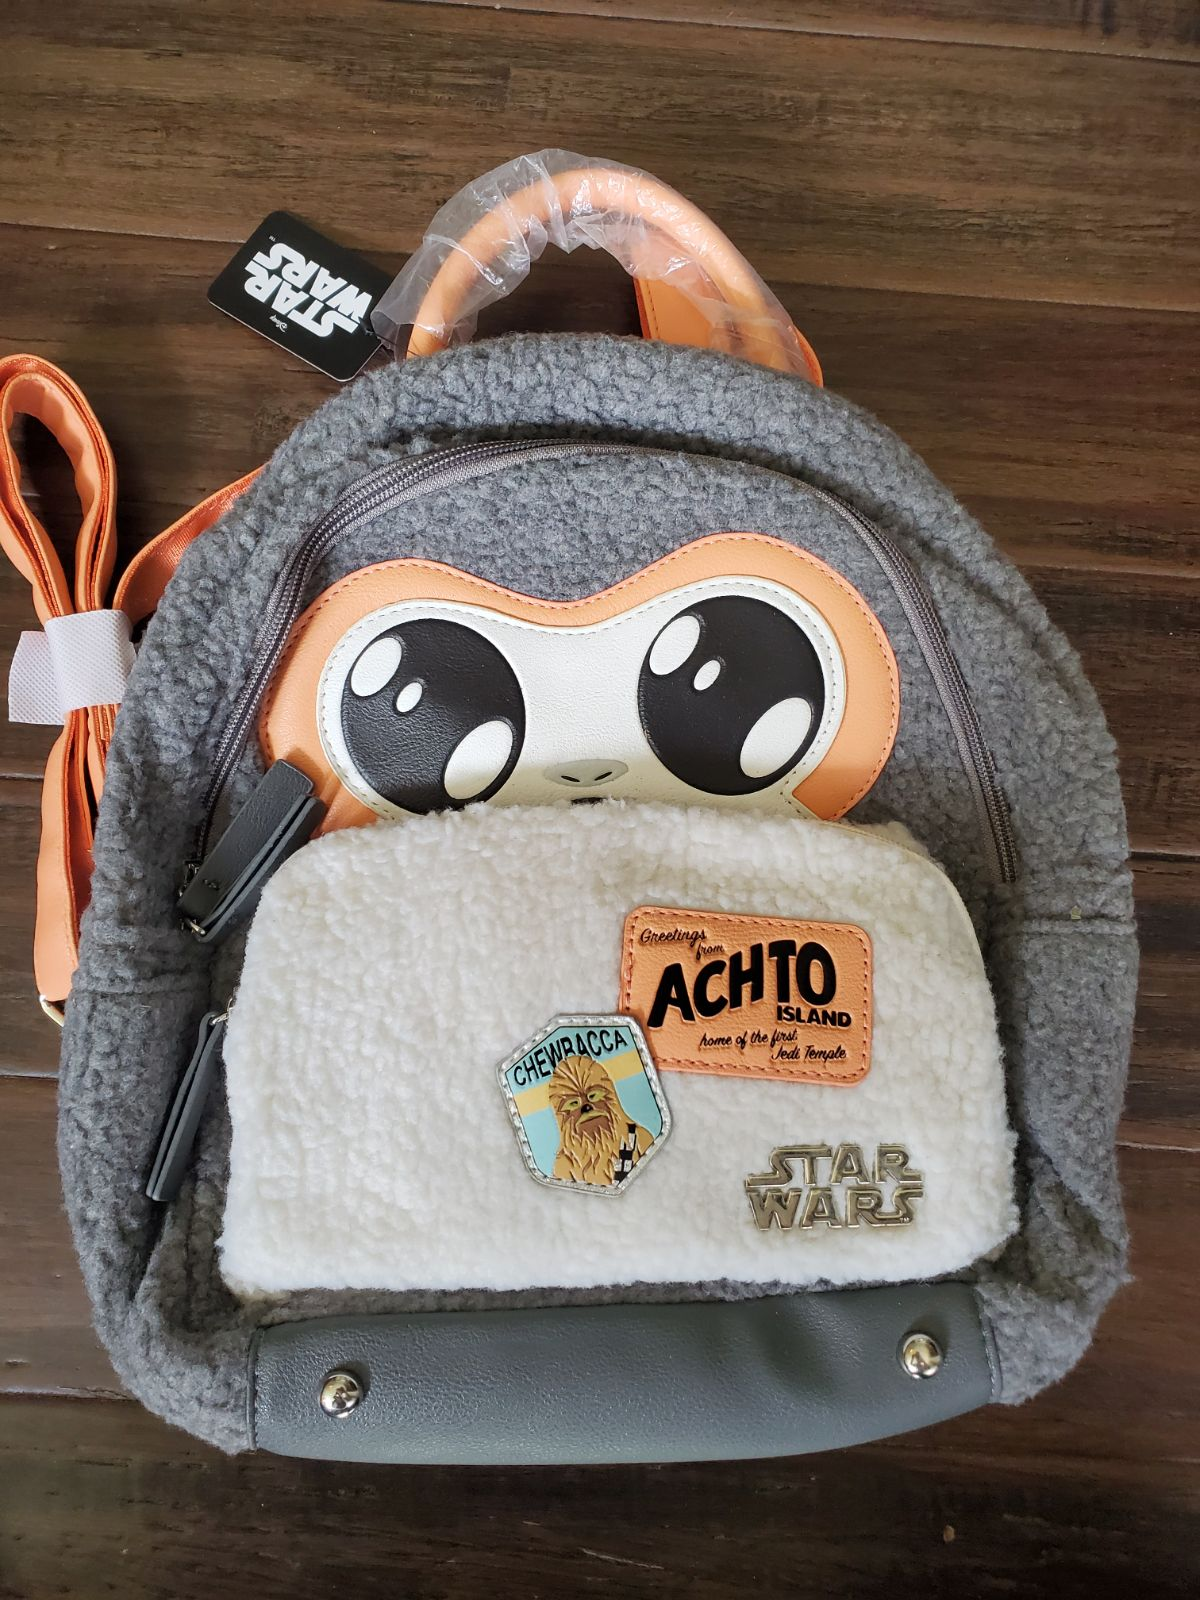 Star Wars mini backpack